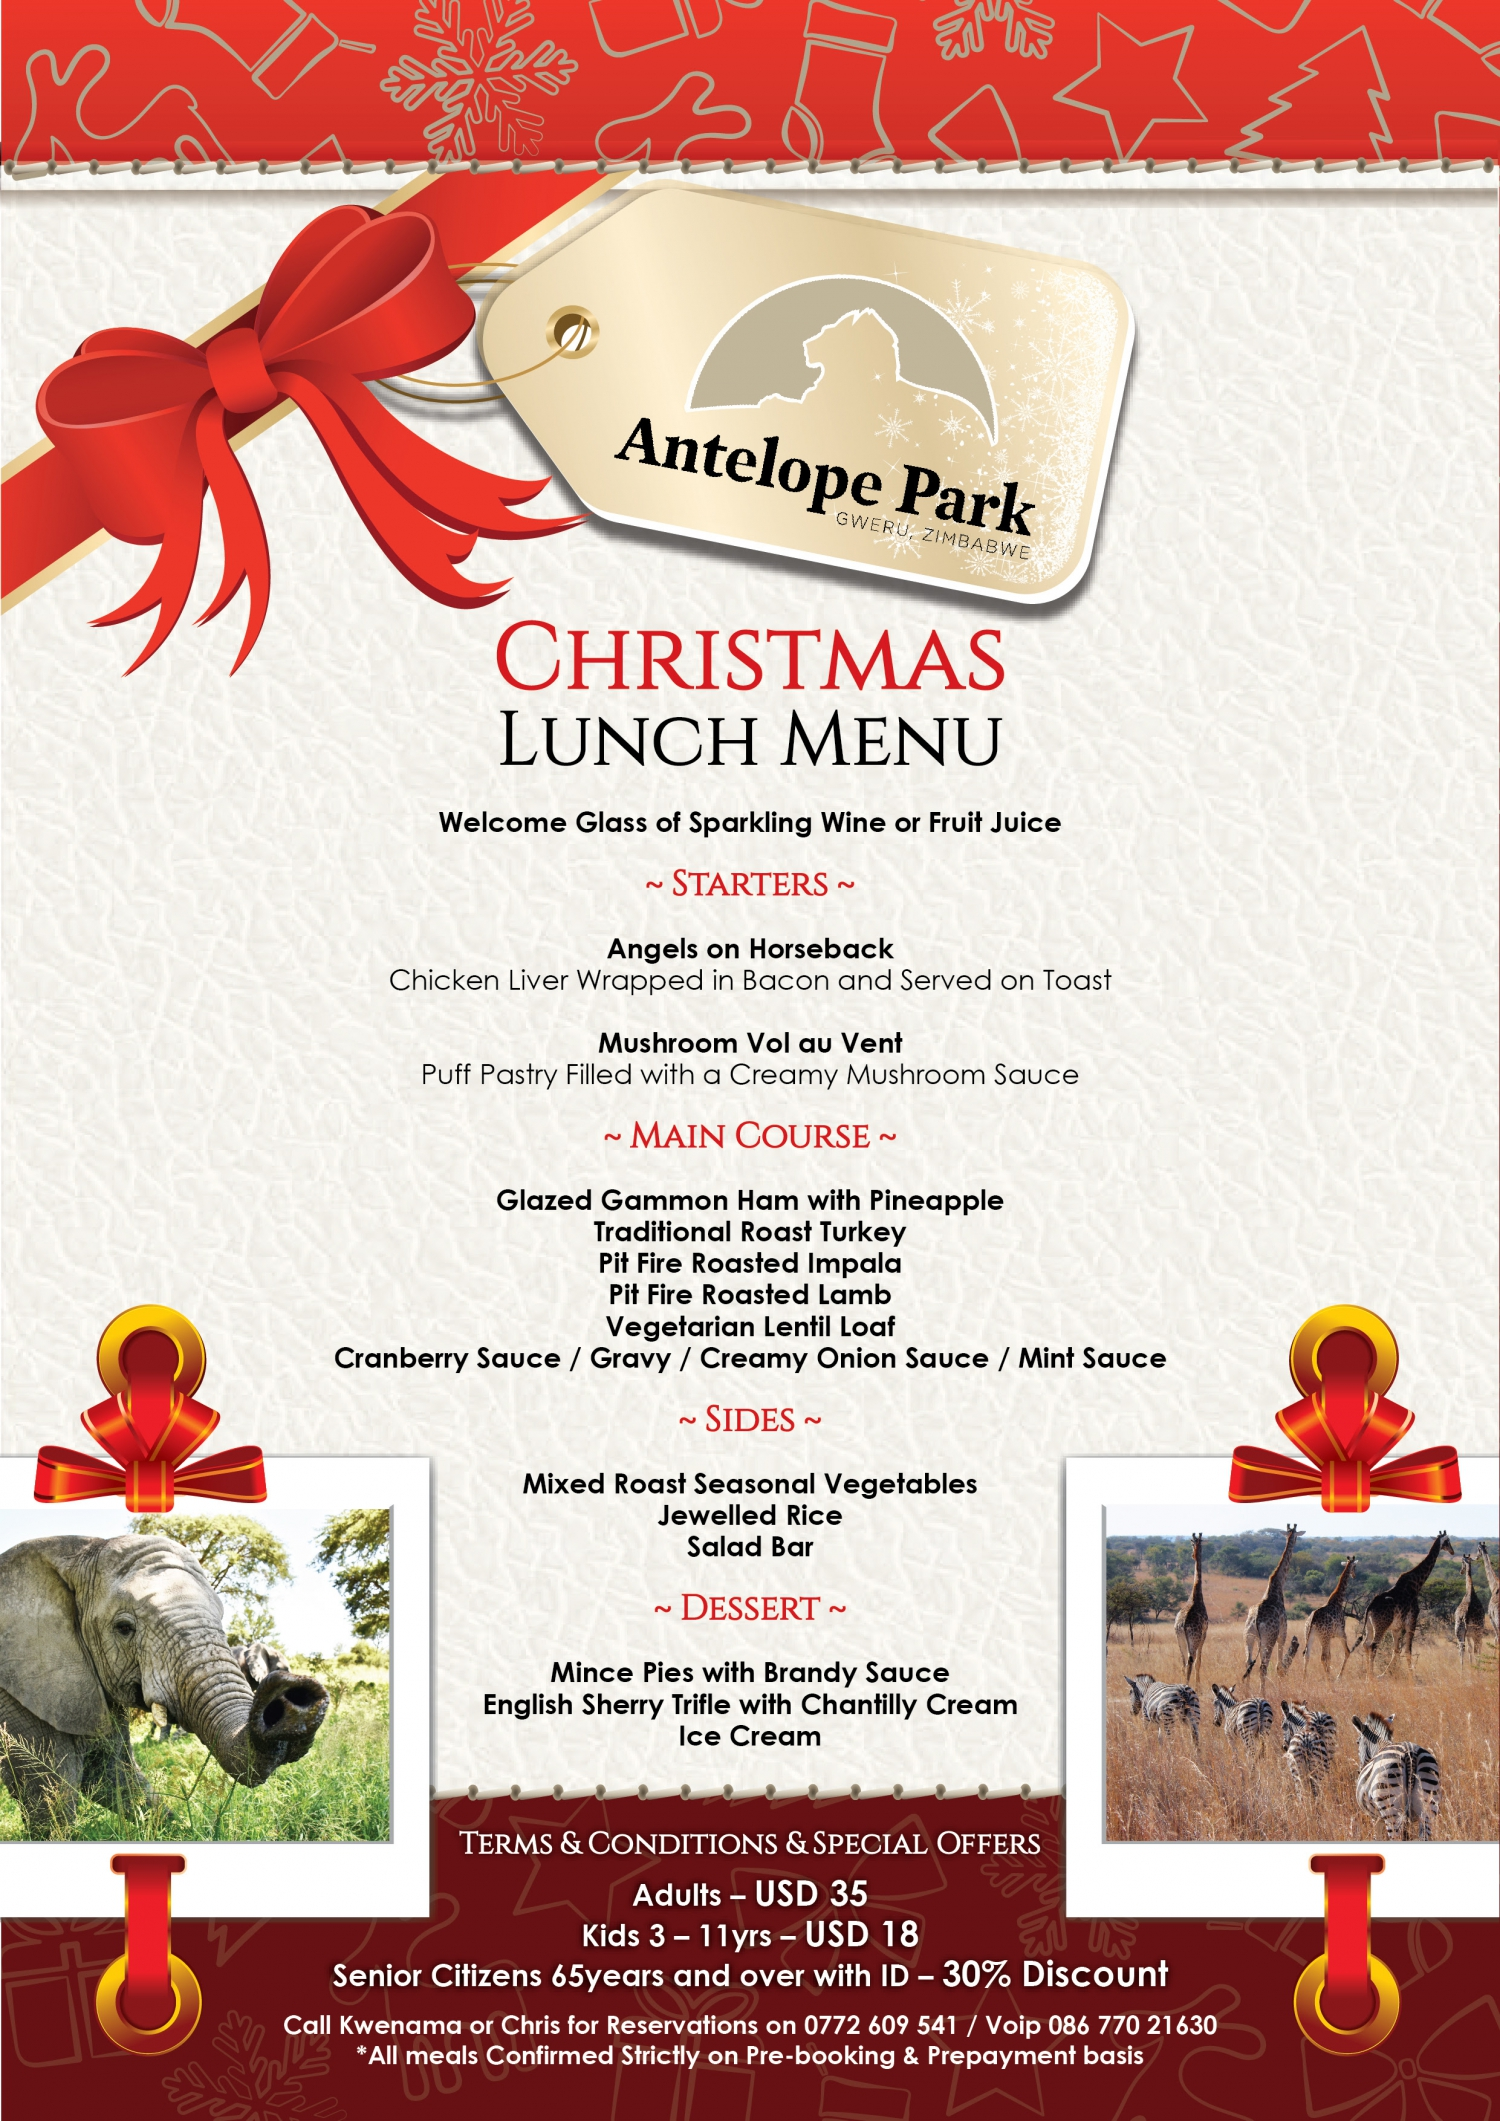 Antelope Park Christmas Packages and Lunch